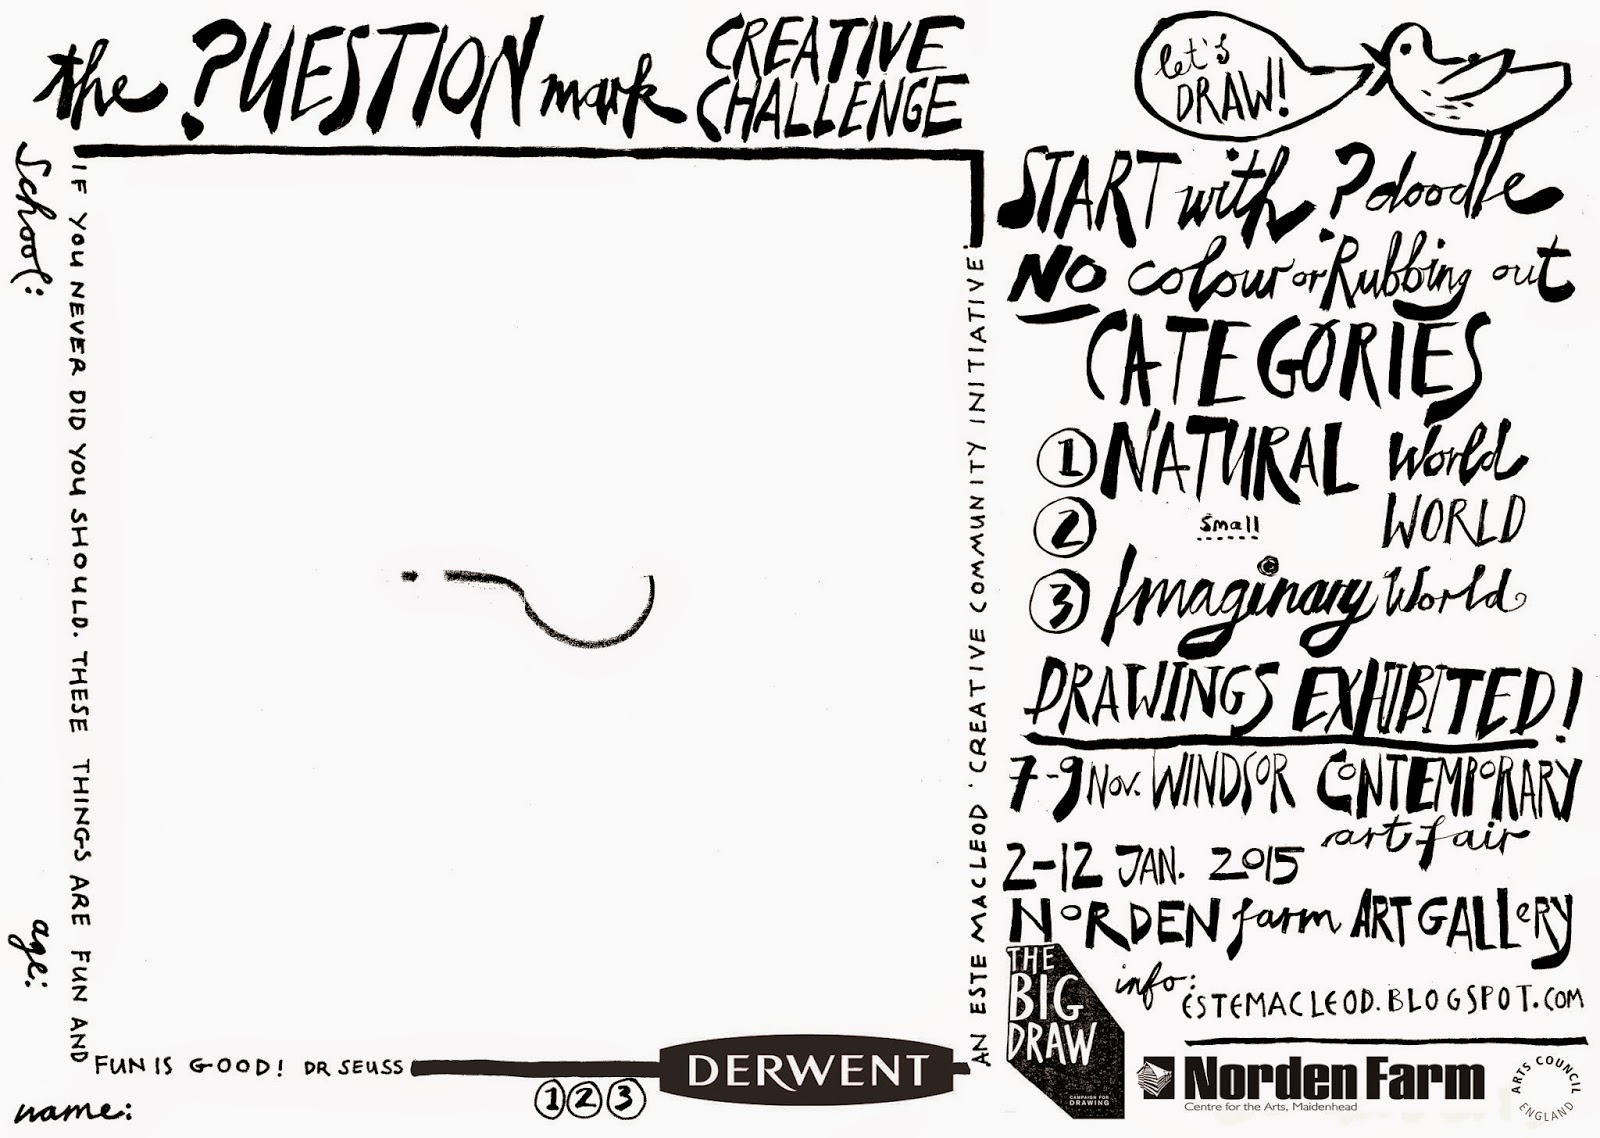 Scribble Drawing Question : The question mark creative challenge jackson s art